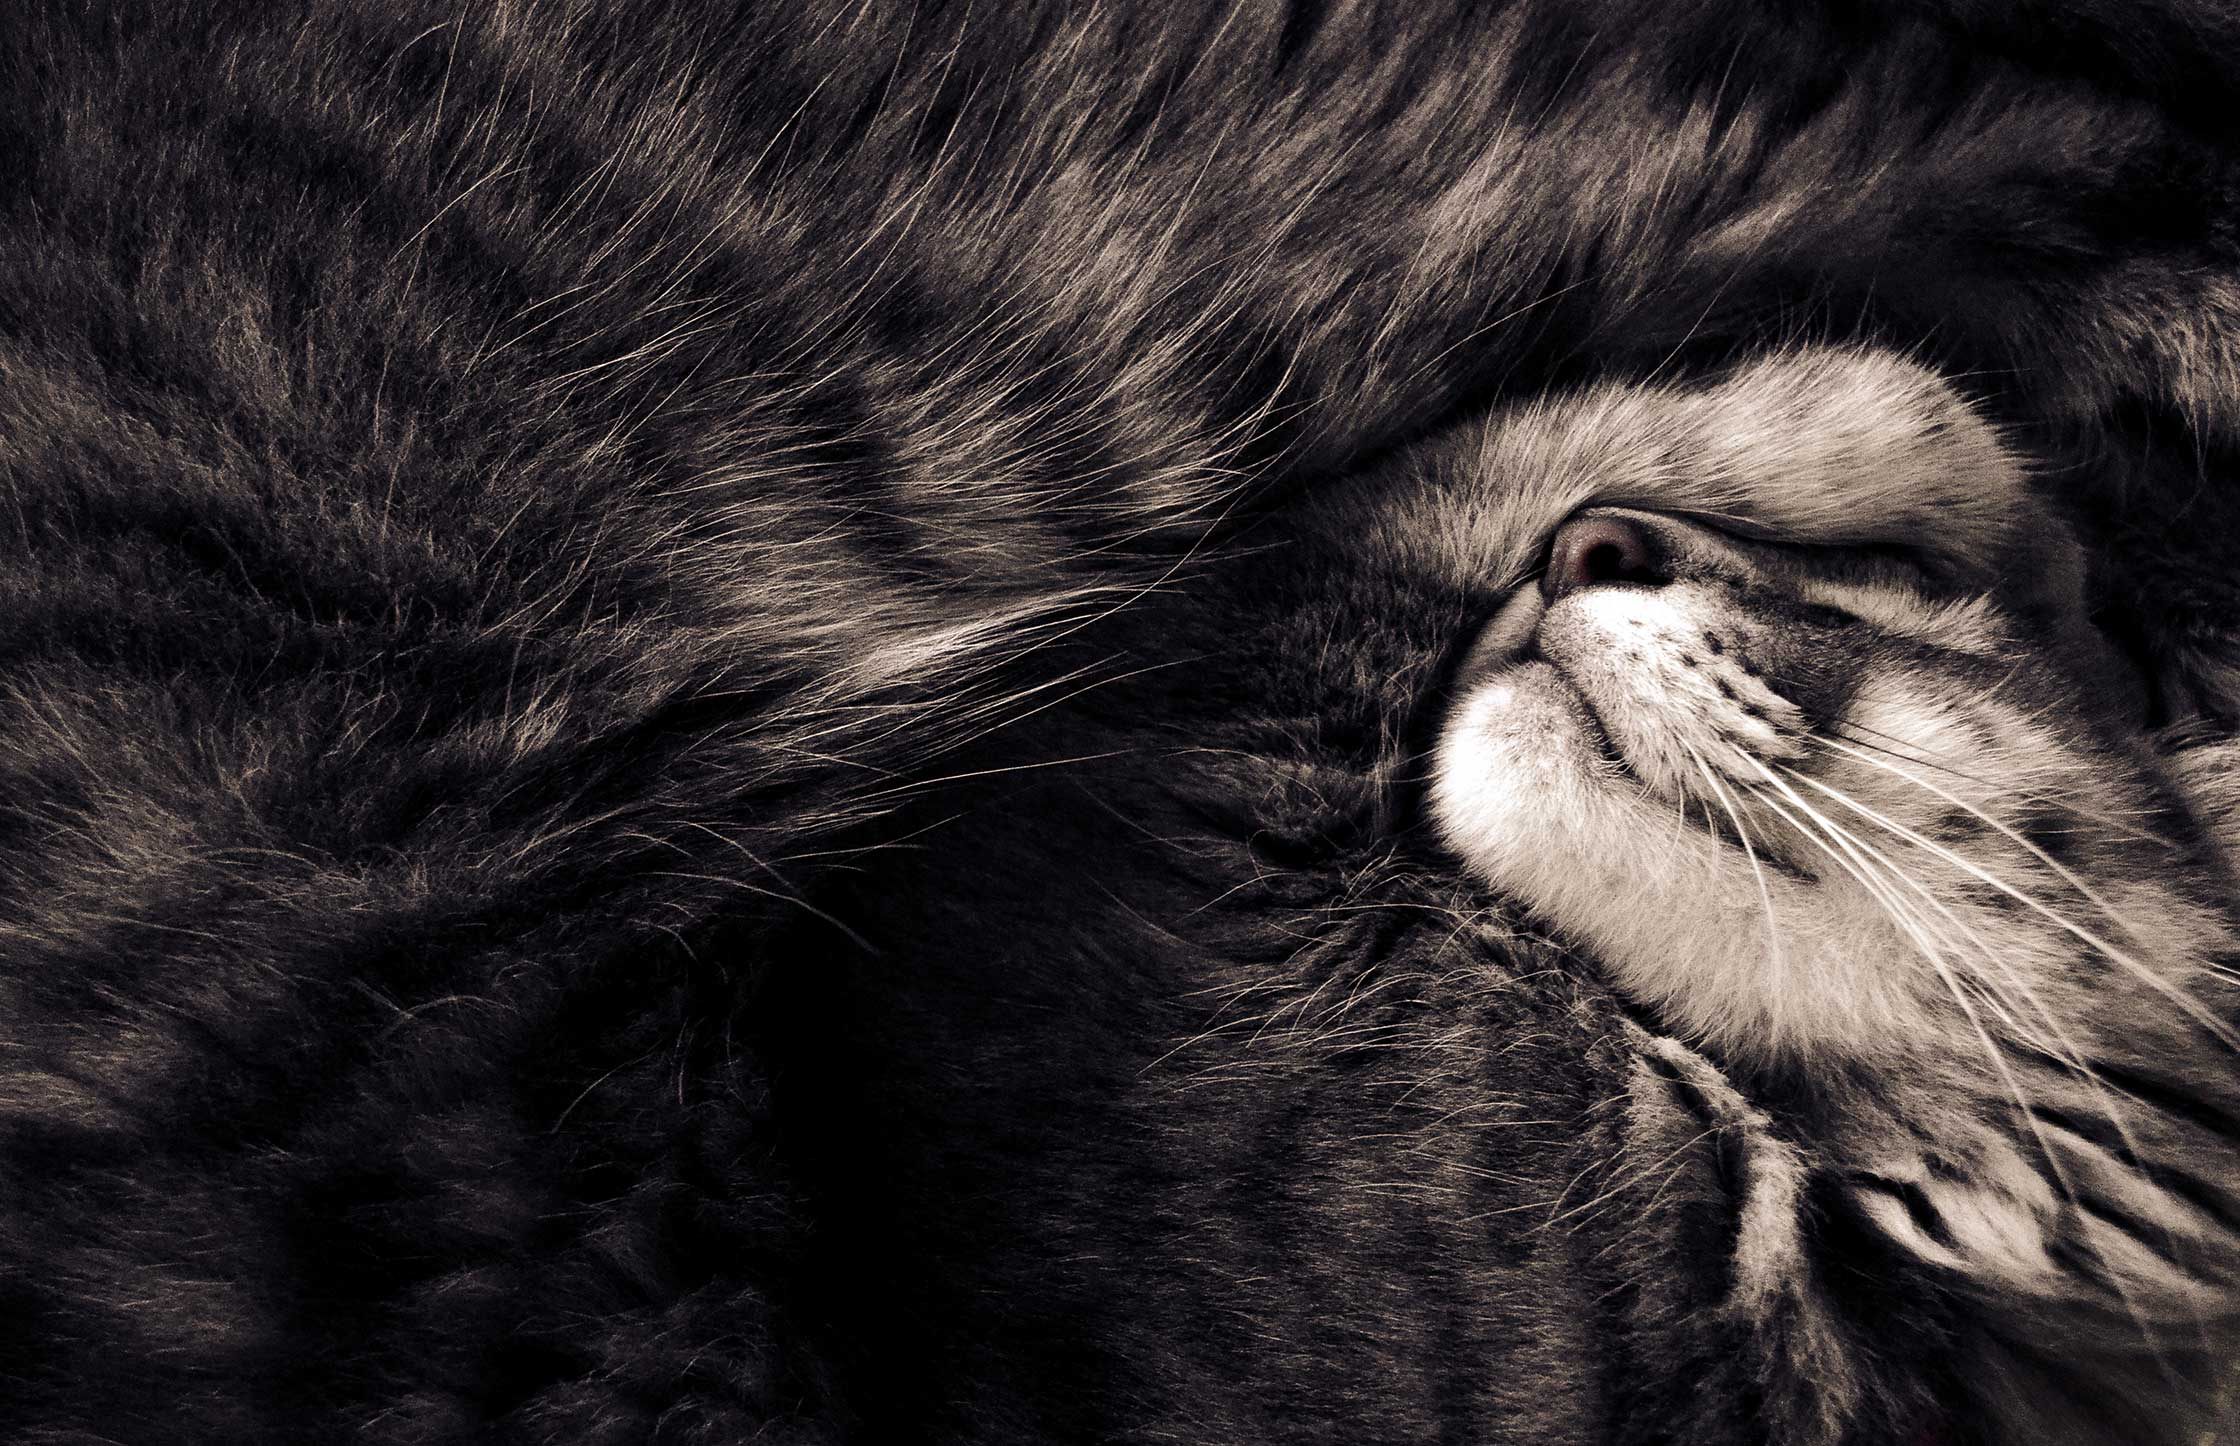 Beautiful picture of a cat by Agustina Pasqualis